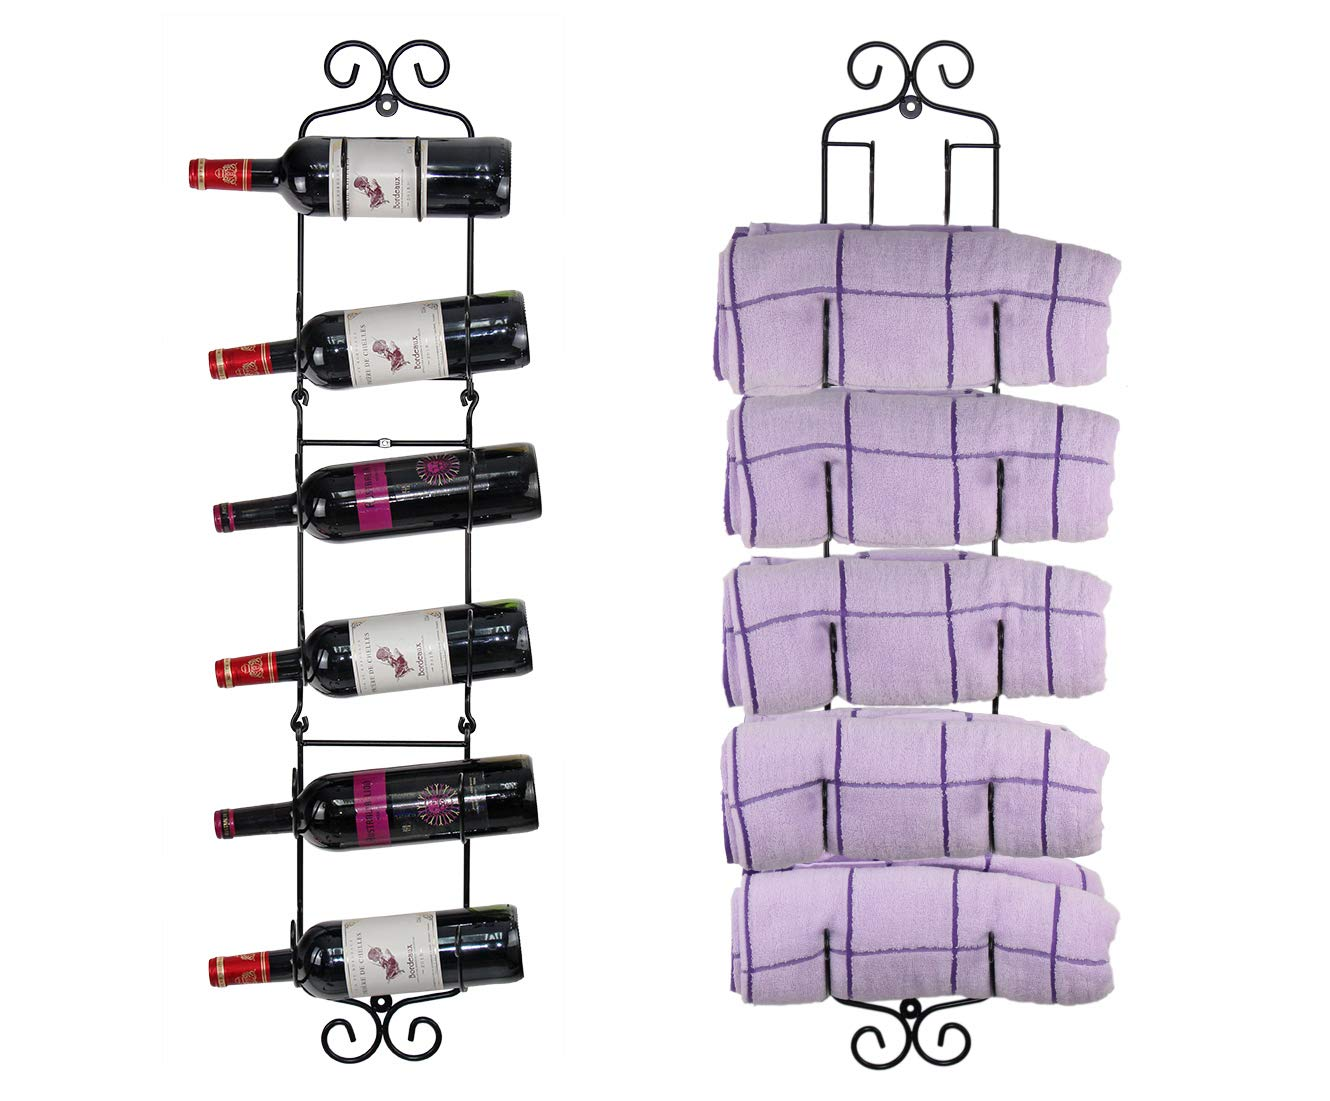 ESYLIFE Wall Mounted Wine Towel Rack - Cascading Design for Holding 2-6 Bottles/Towels